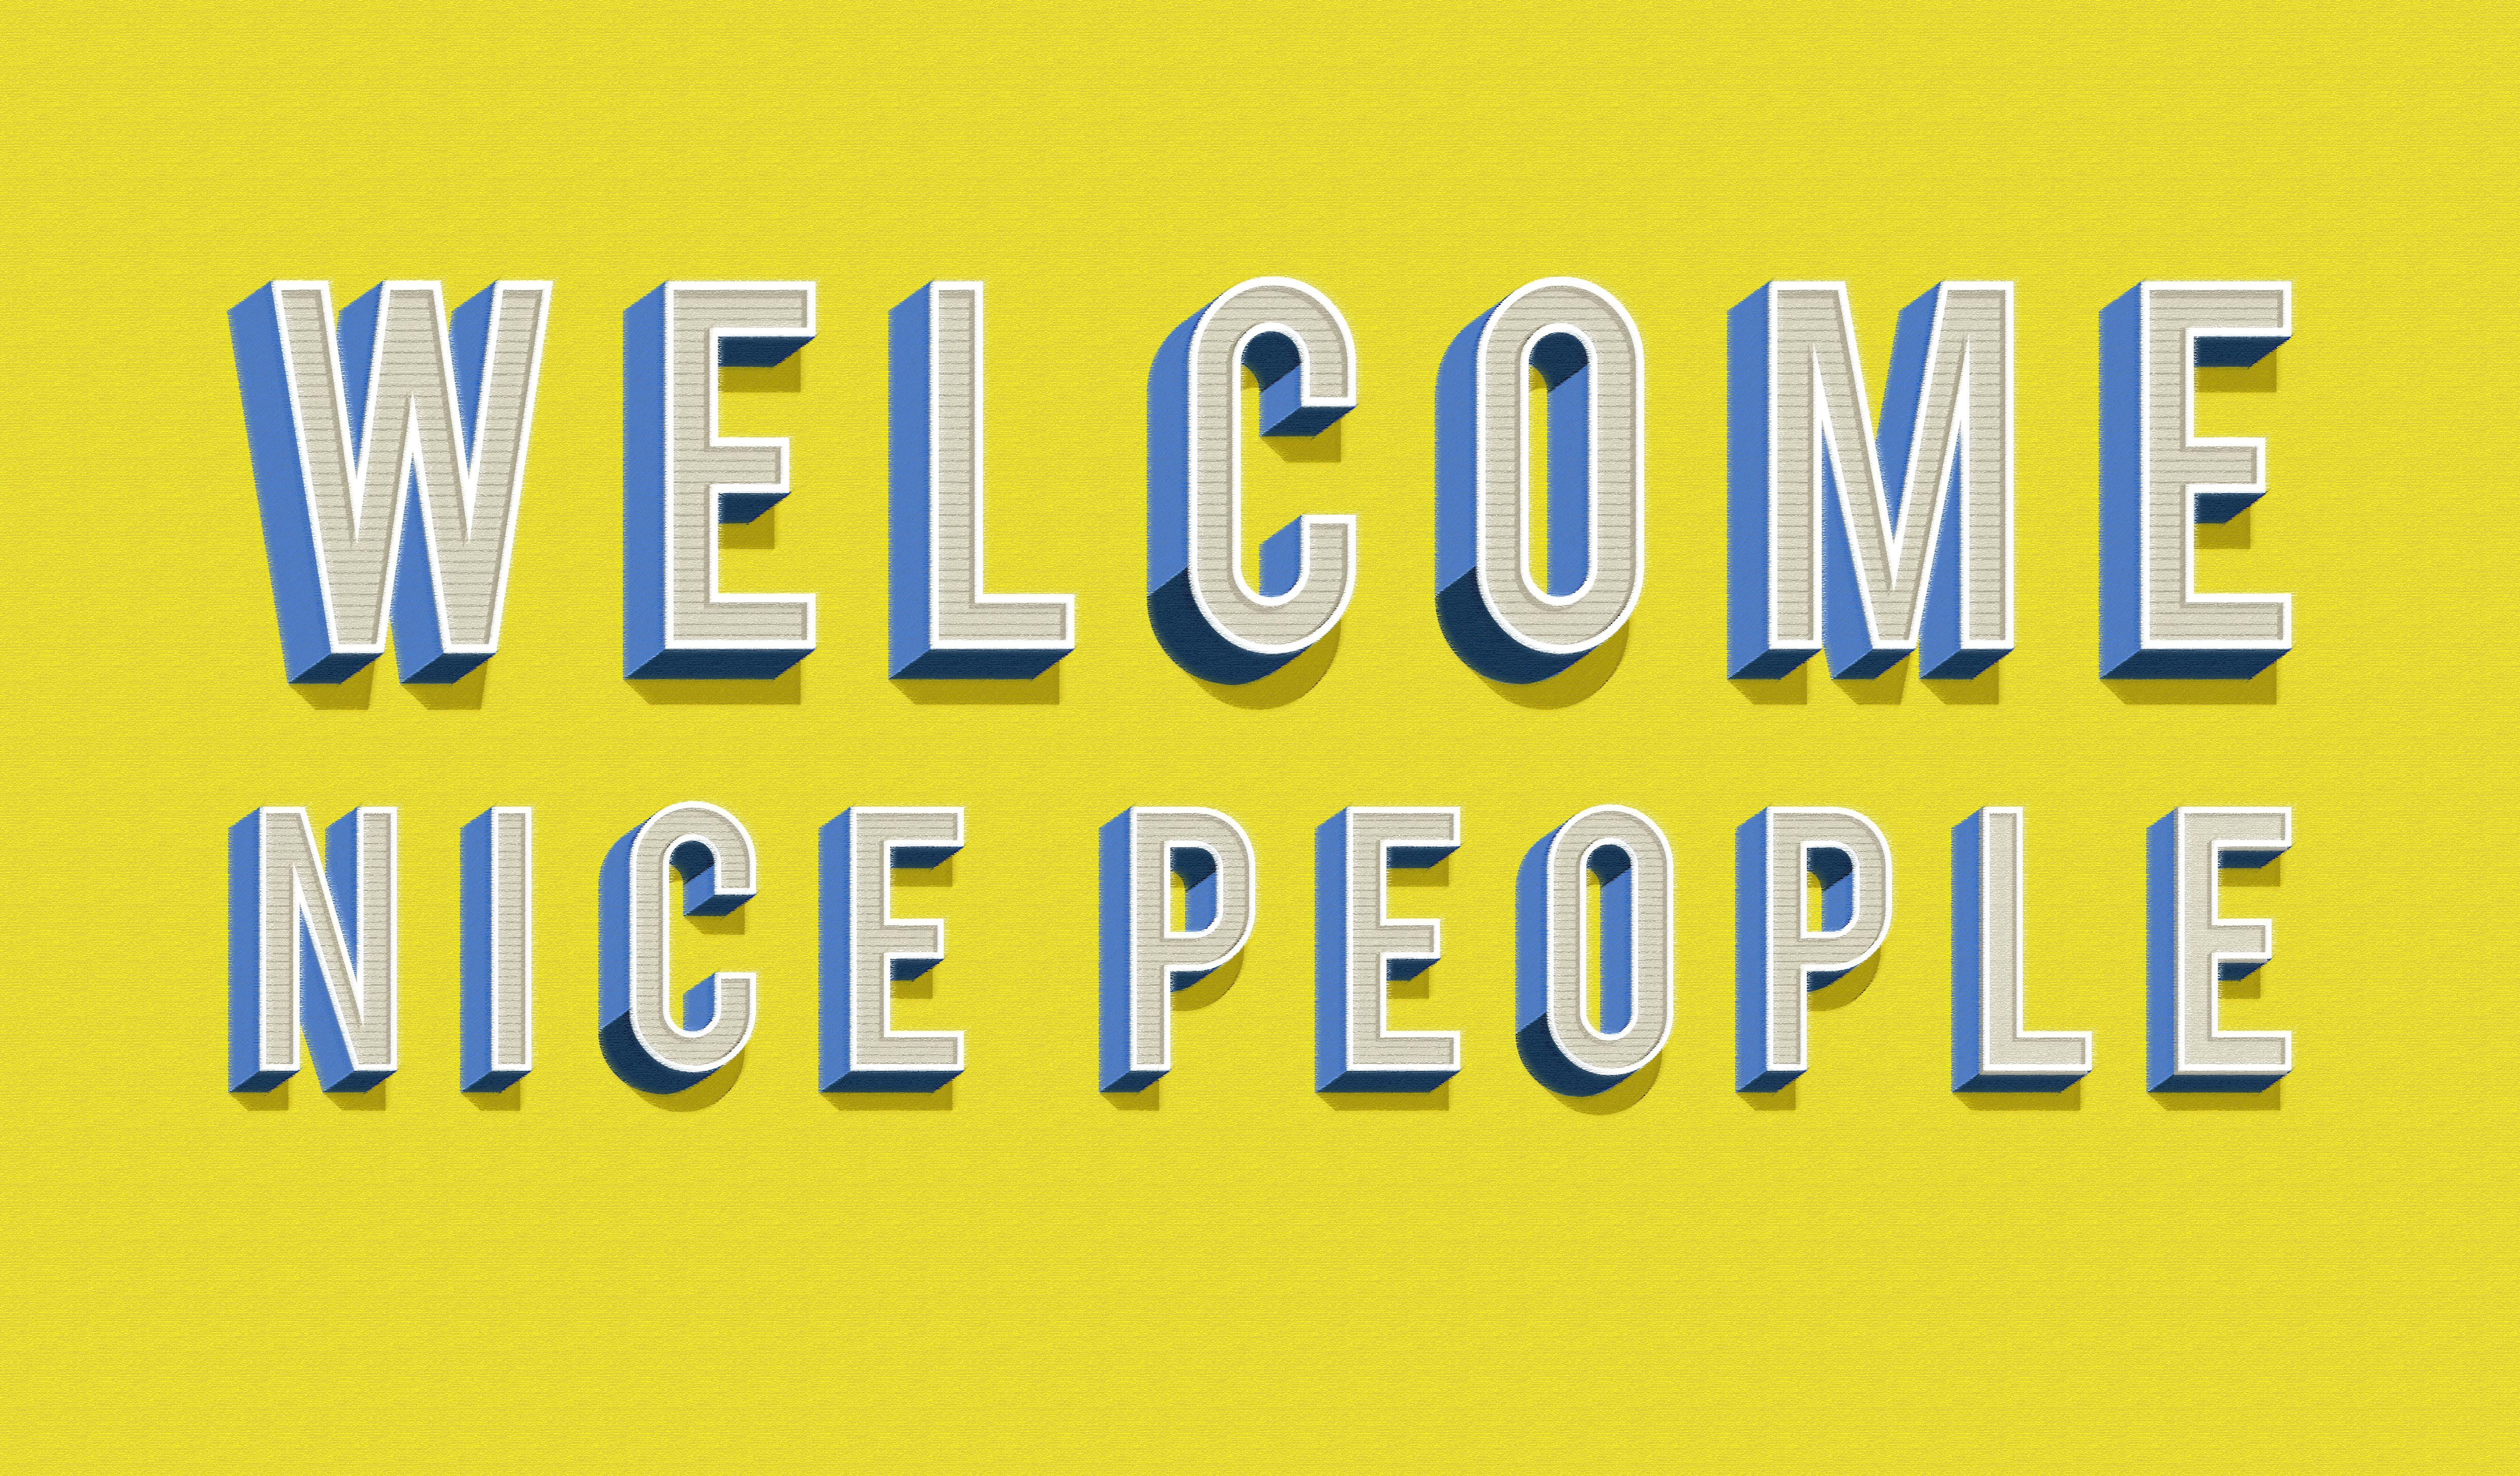 6_Welcome Nice People3